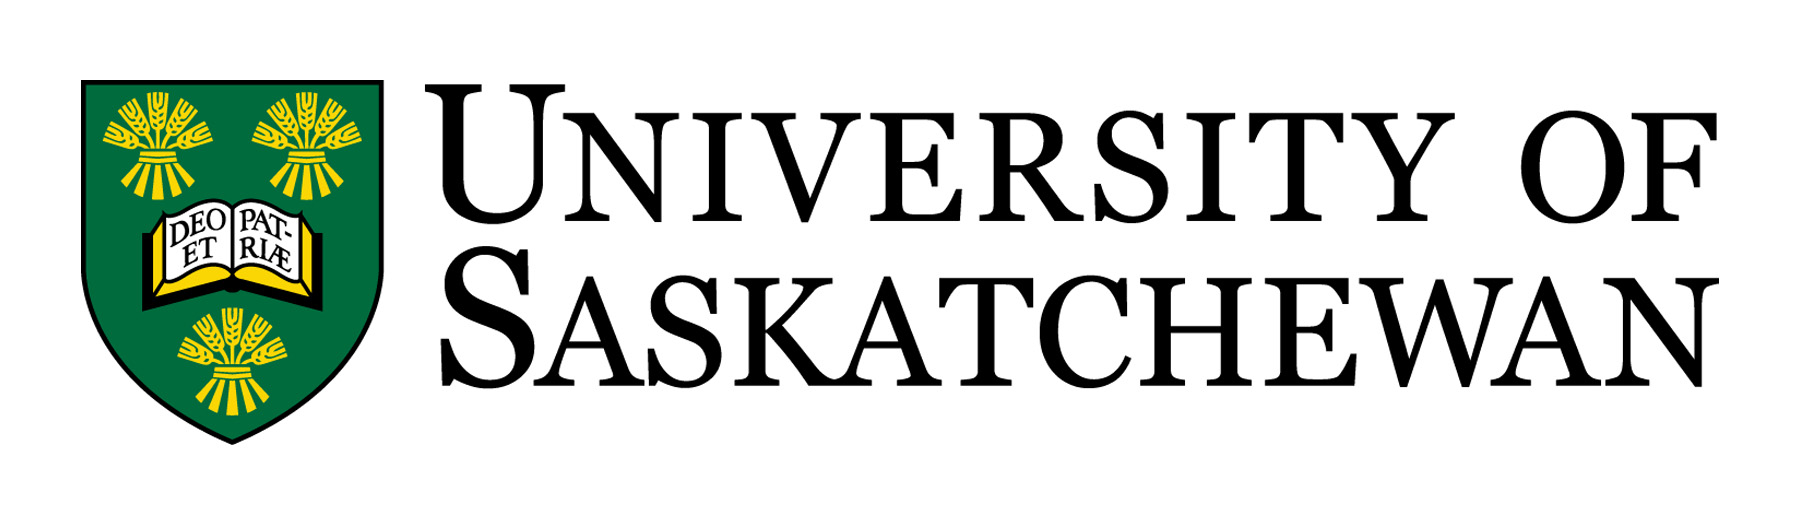 UNIVERSITY OF SASKATCHEWAN - CANADA